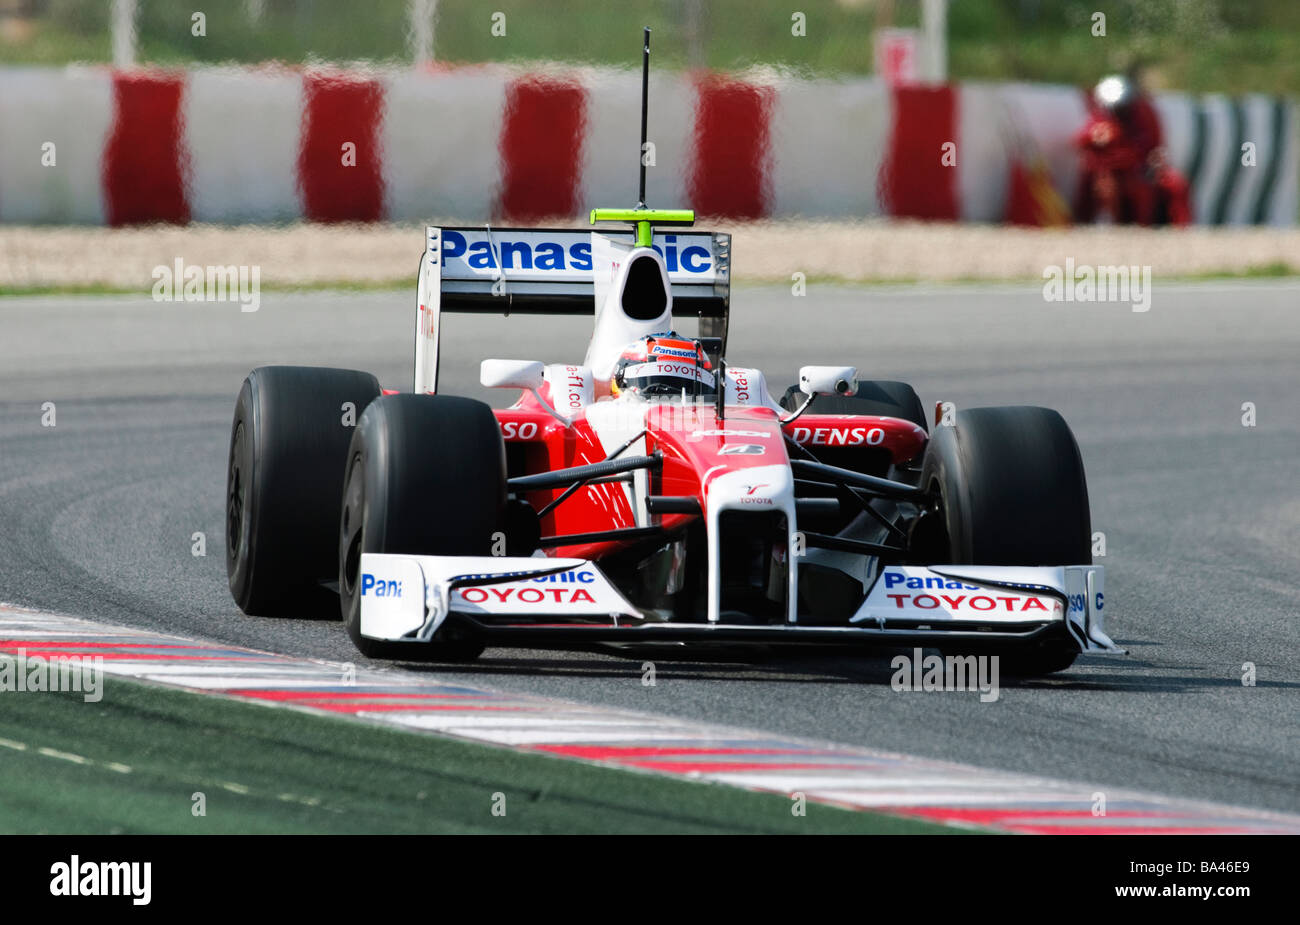 Timo GLOCK in the Toyota TF109 race car during Formula One testing ...